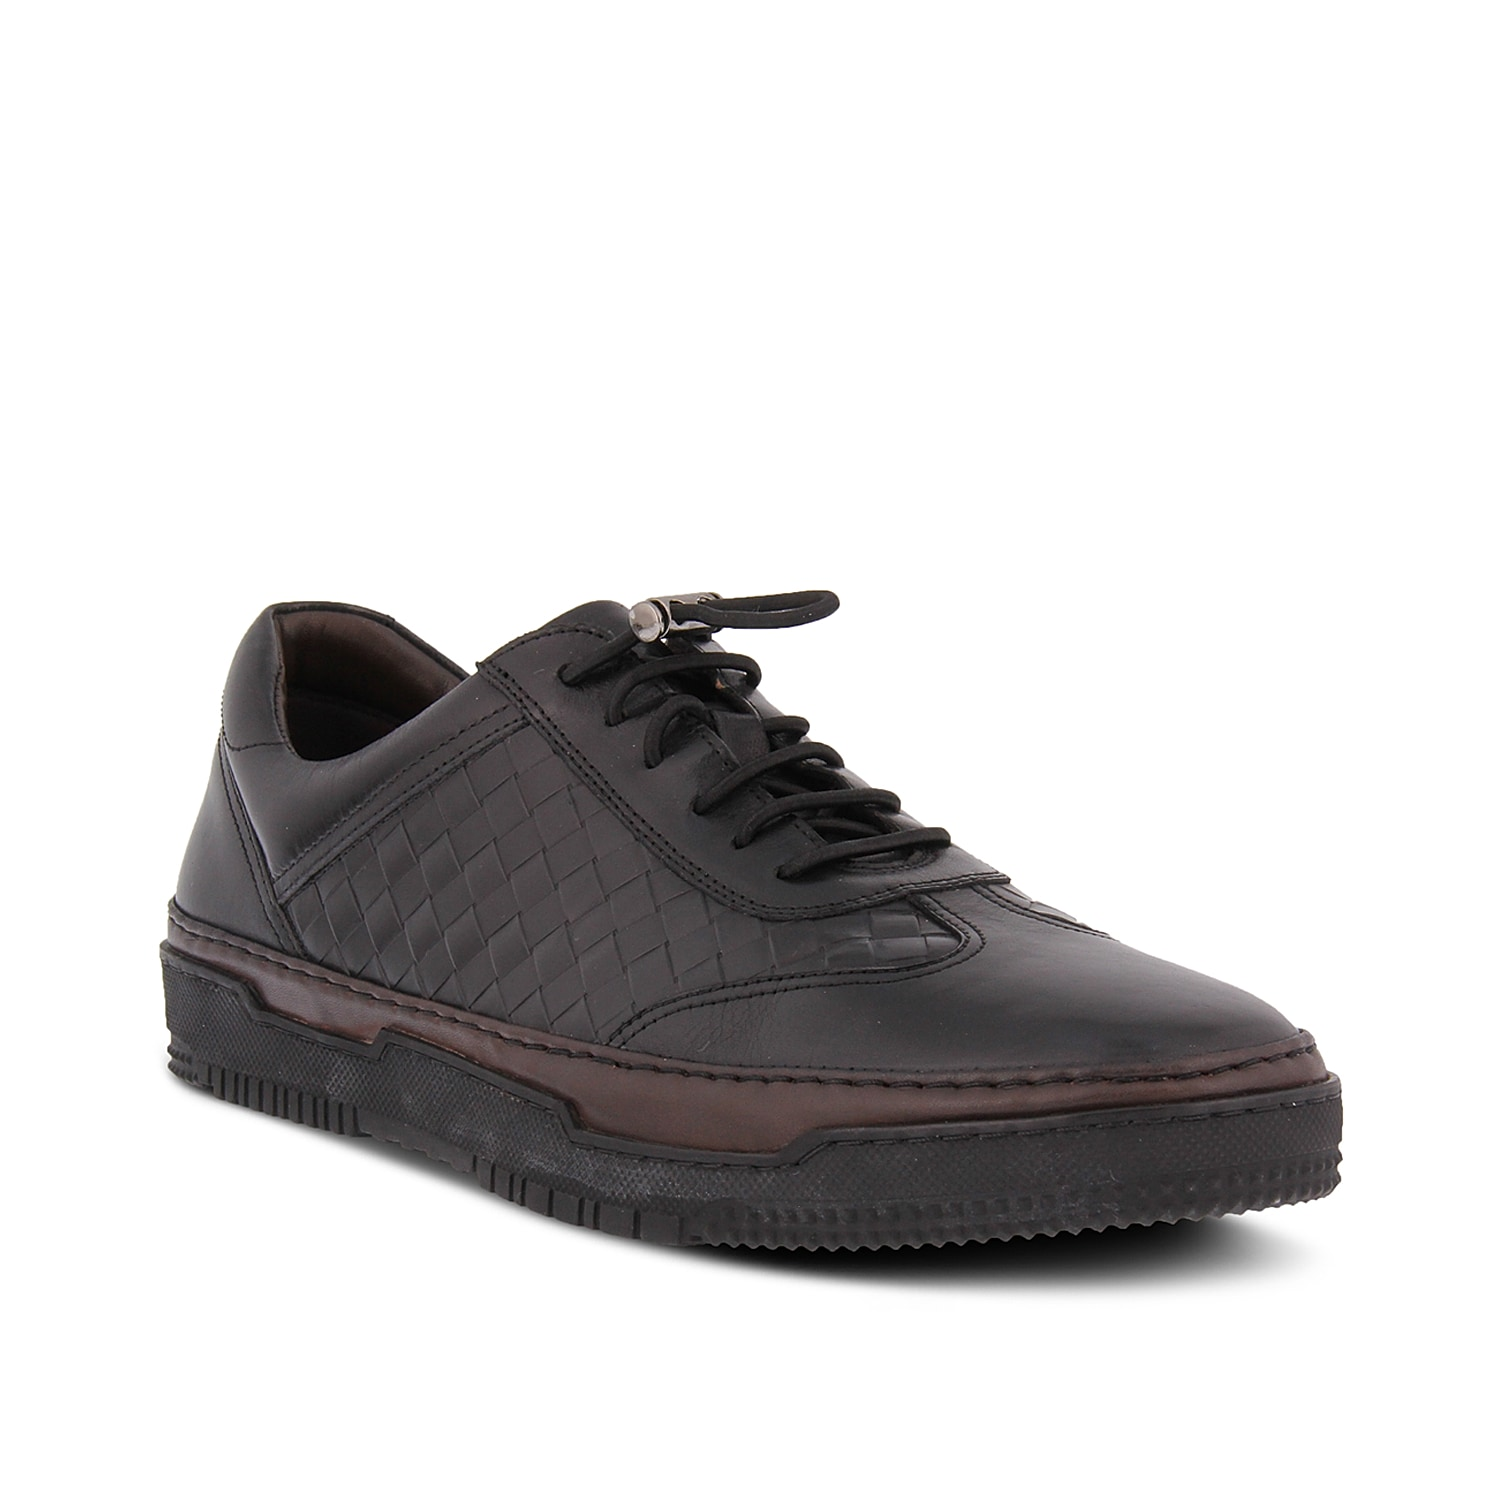 Bring distinguished style to your casual look with the Michael sneaker from Spring Step. These leather kicks feature bungee lacing for a custom fit and a leather sole for extra grip.